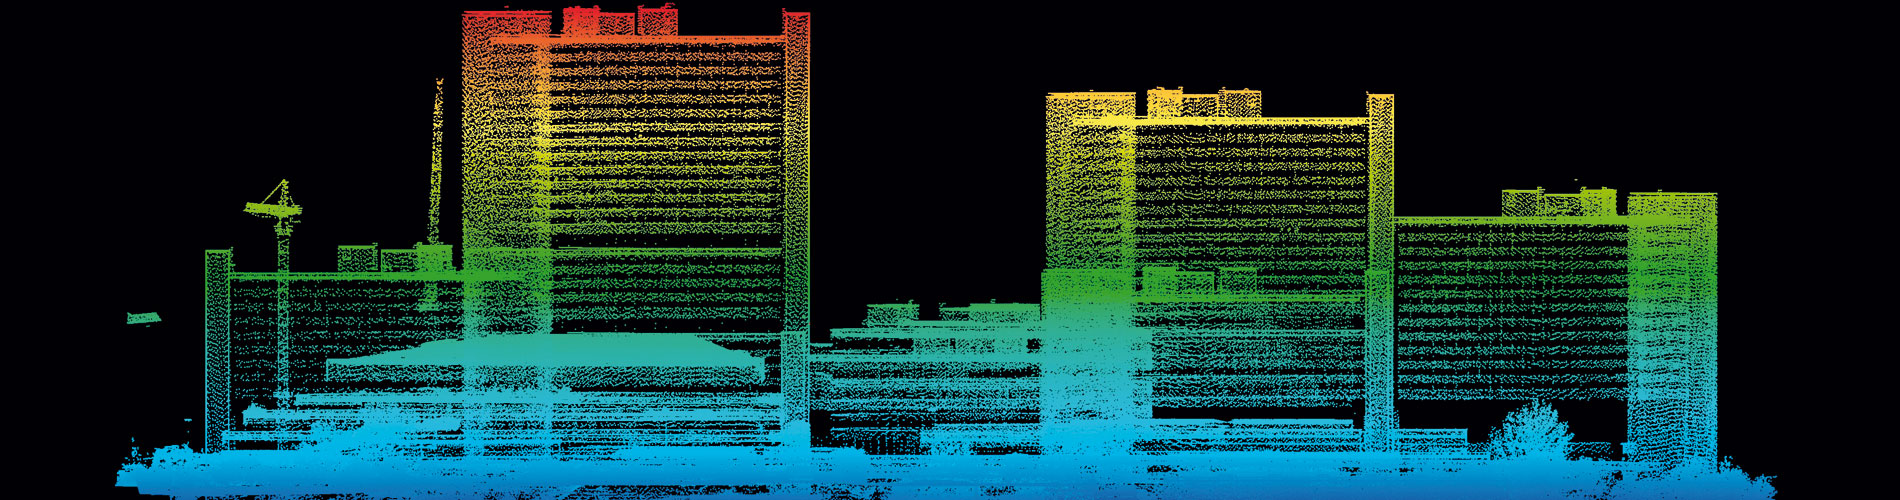 city_mapping